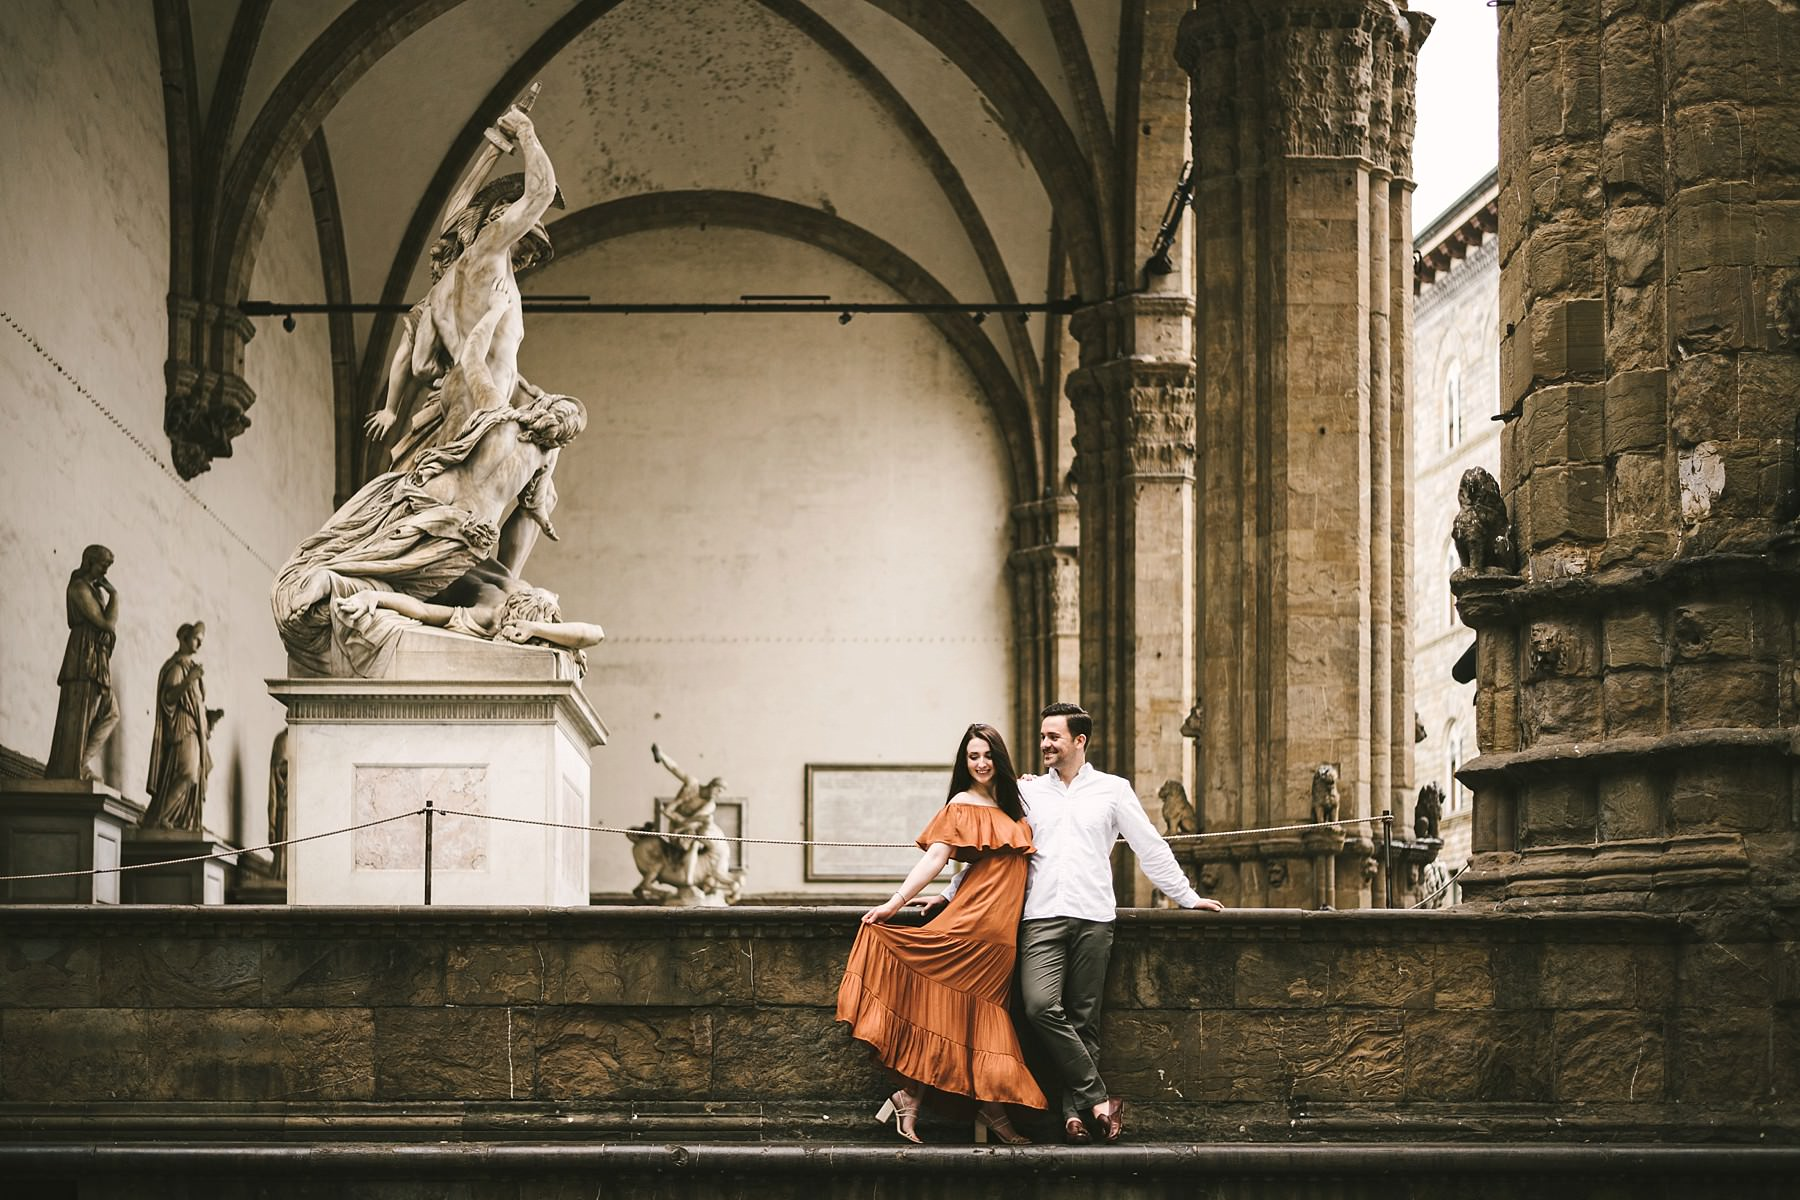 Engagement session photos in Florence. The colors of sunrise. Sunrise engagement photo shoot in Florence. Couple portrait near Piazza Piazza della Signoria and Loggia Lanzi in a dreamy soft light